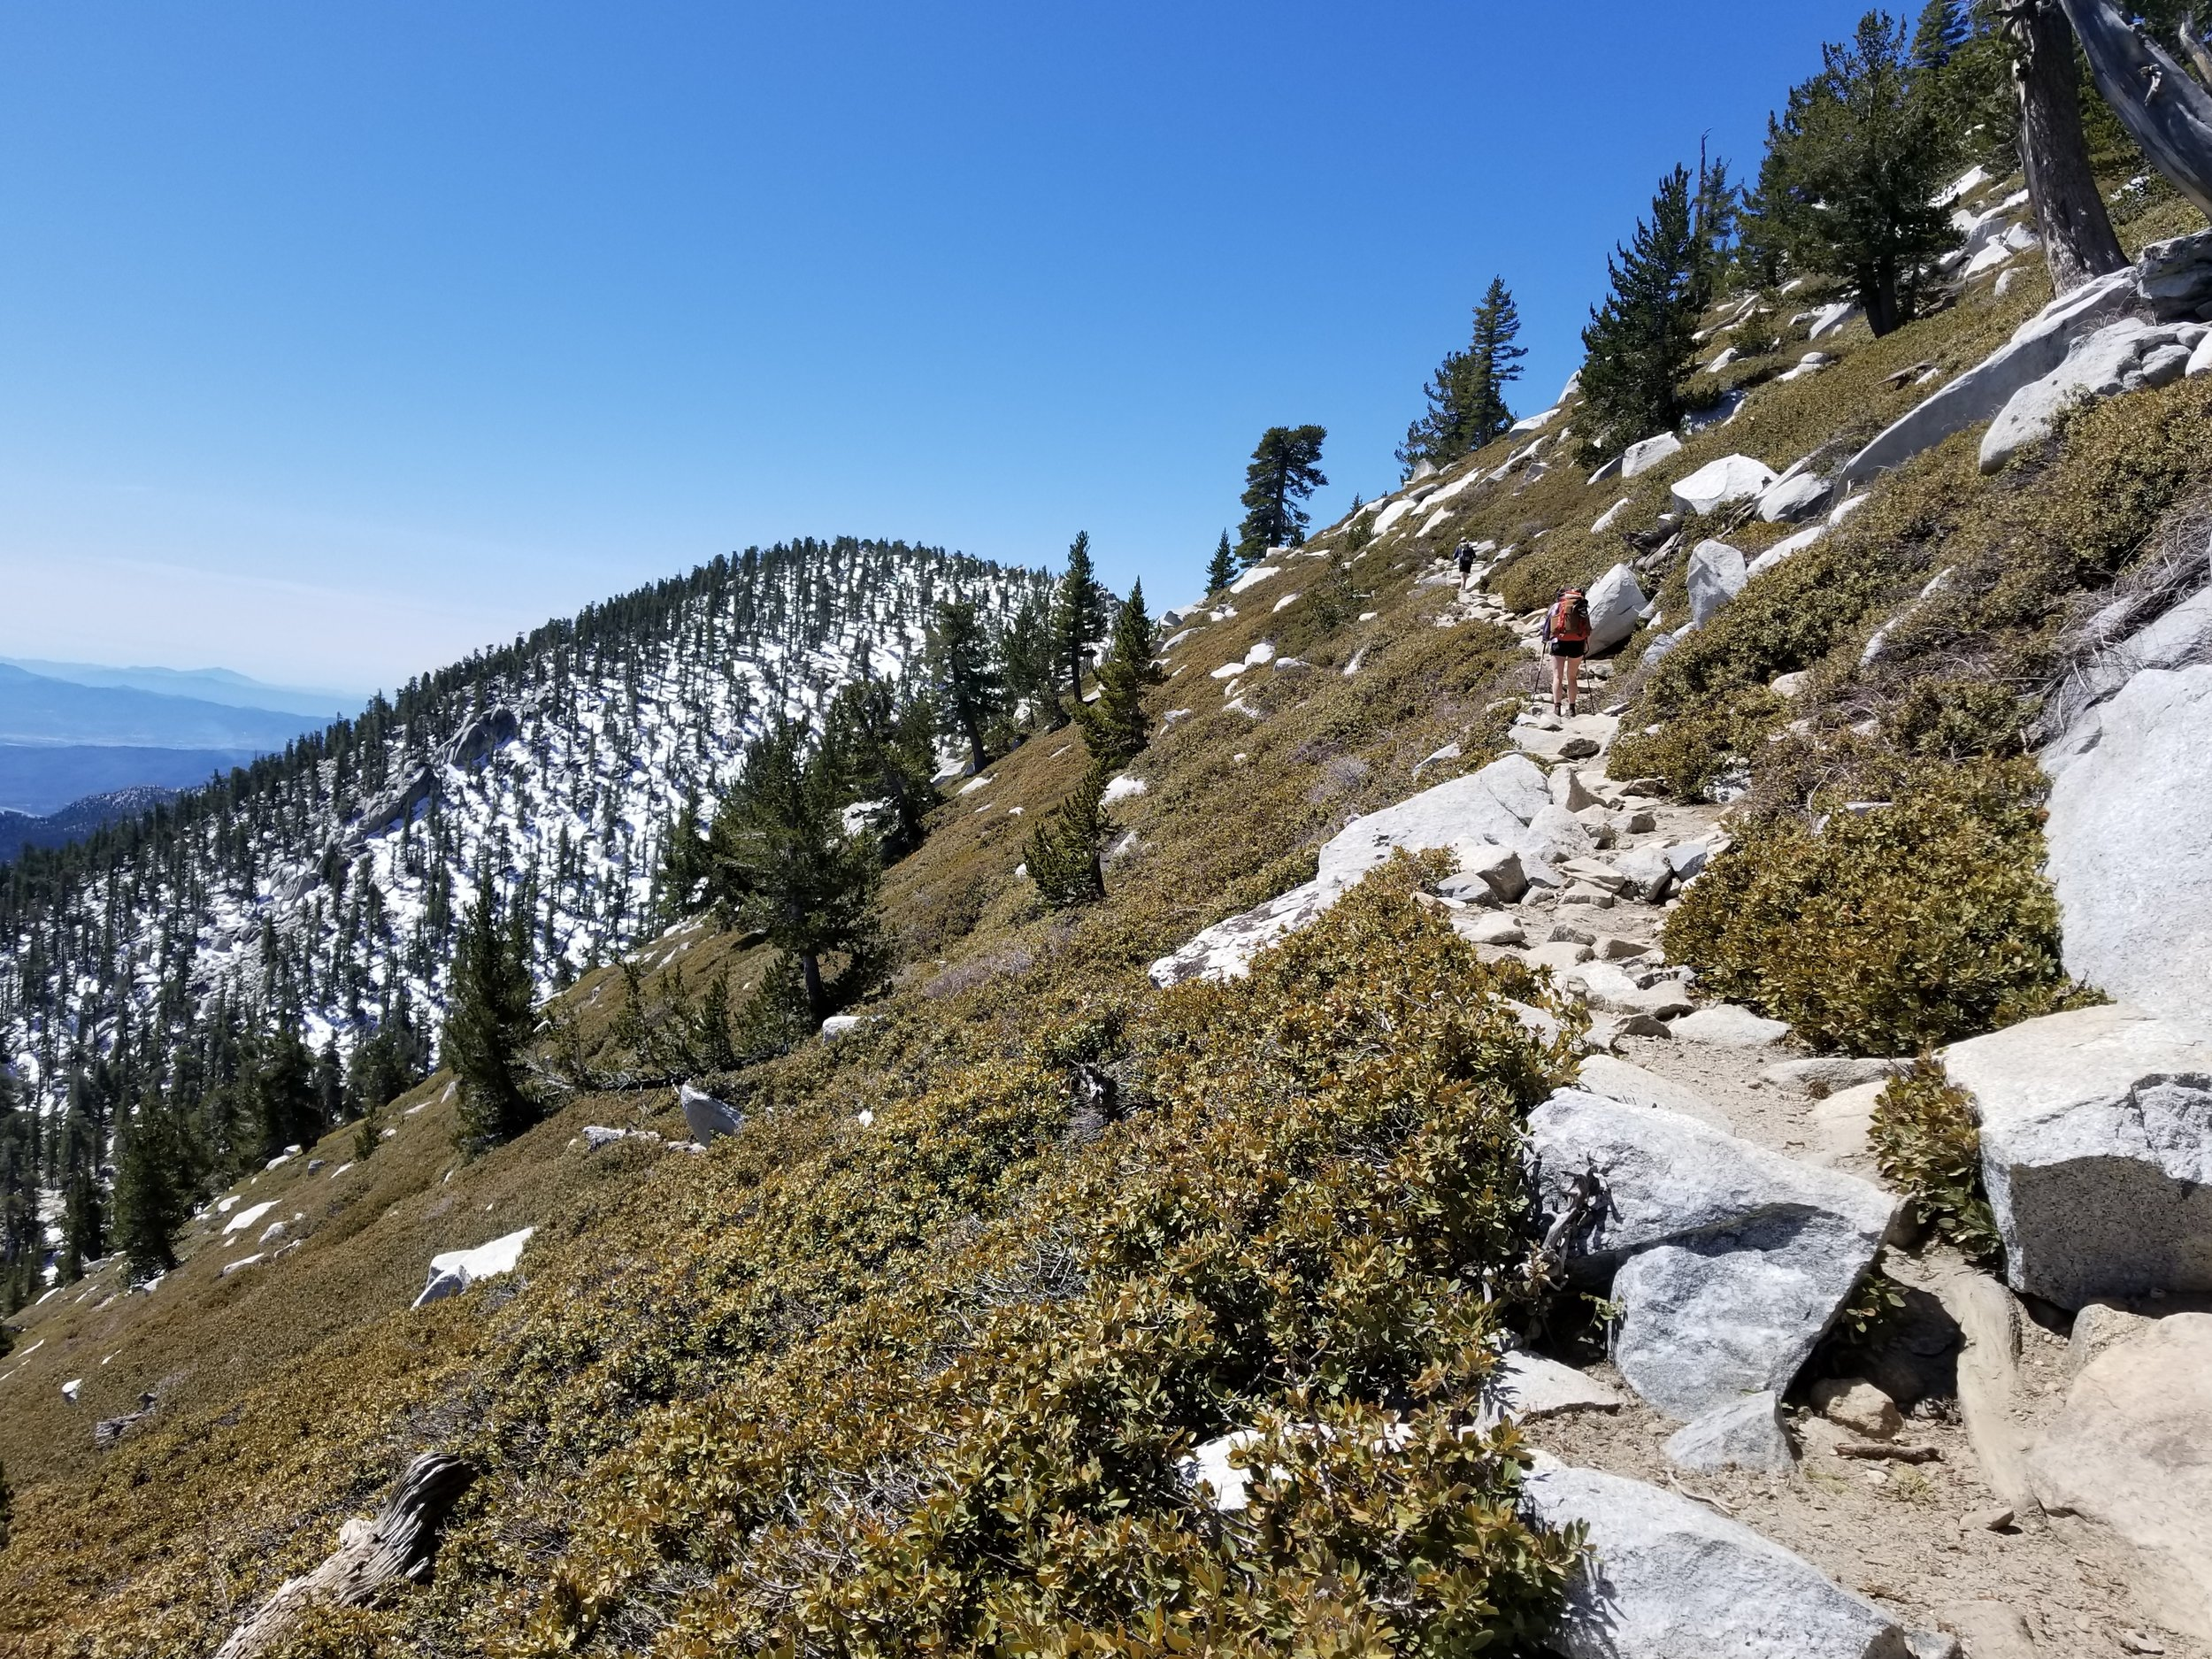 hiking up to the summit